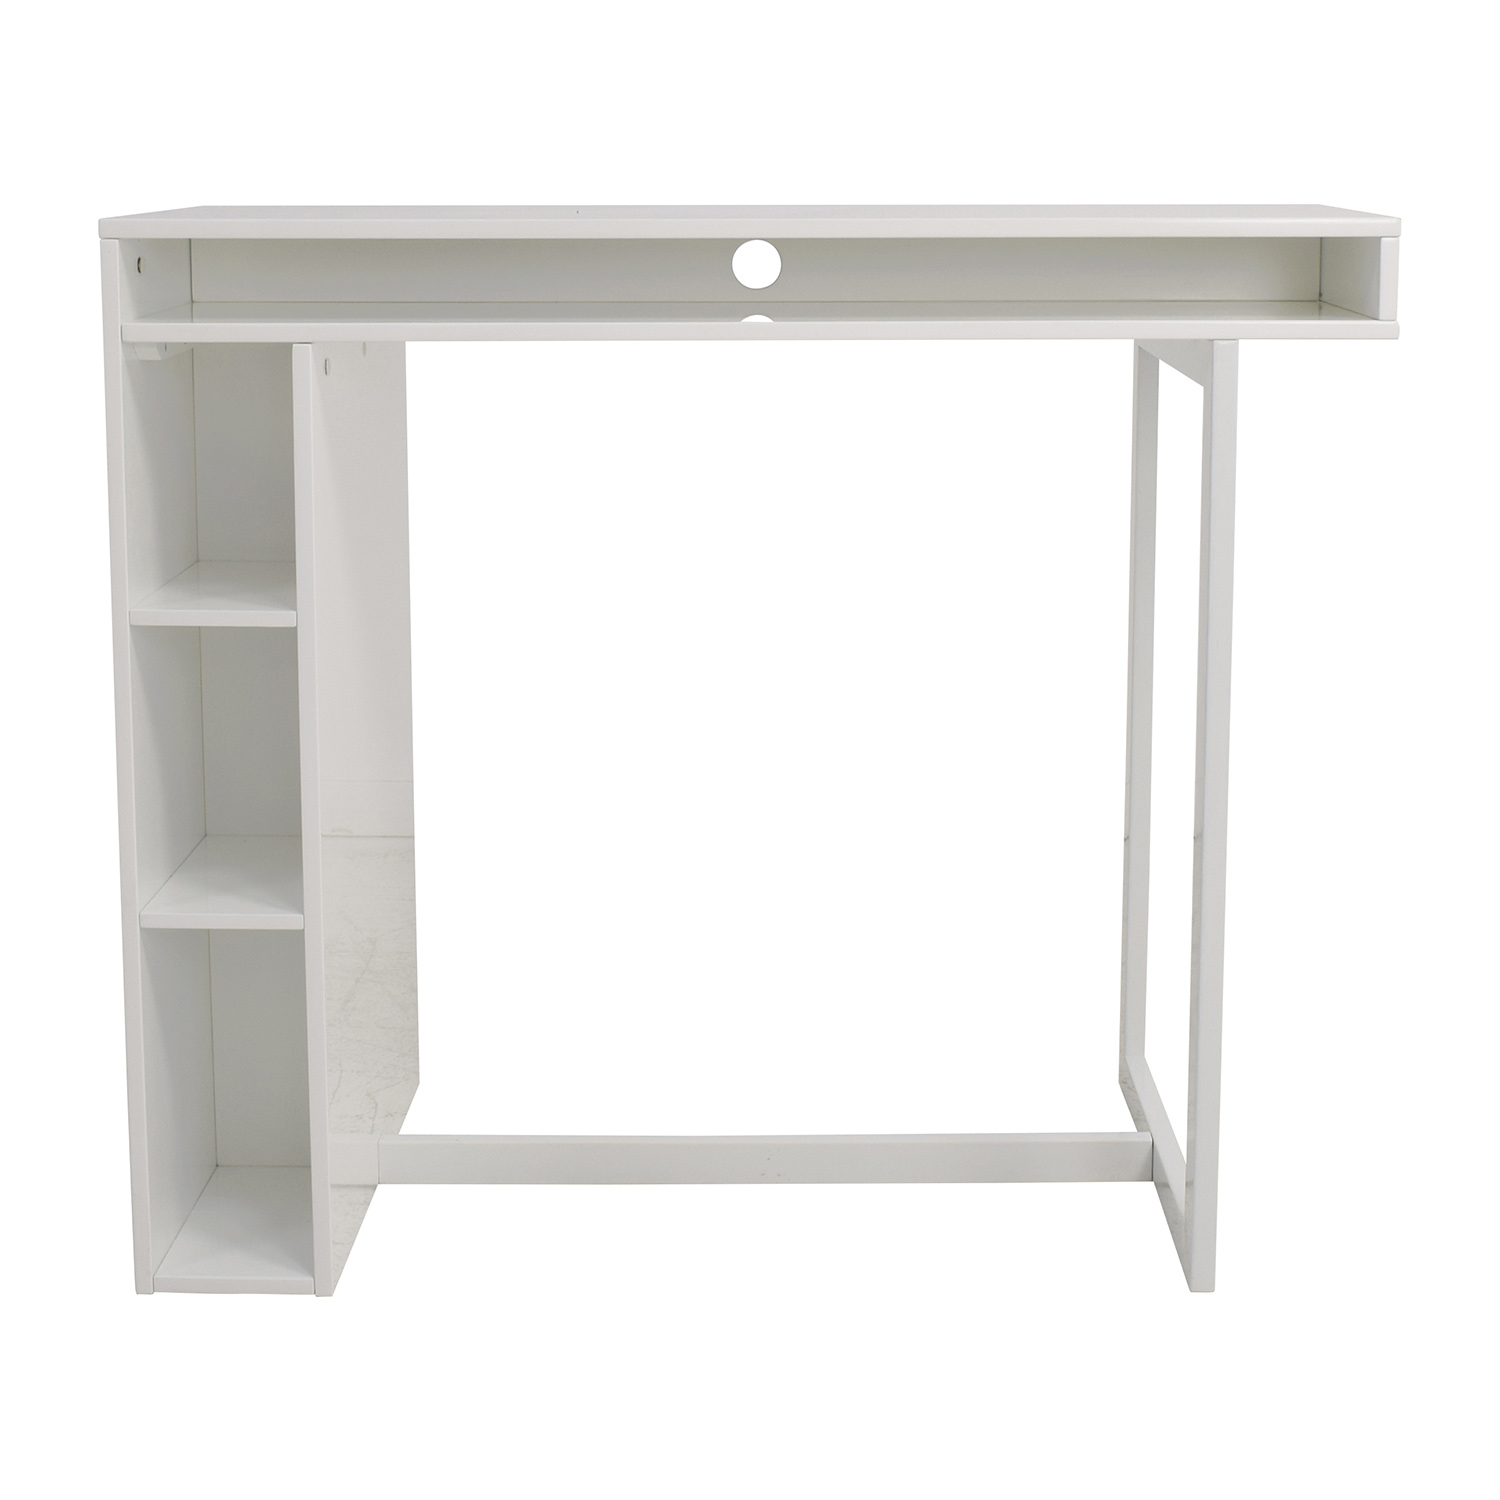 CB2 CB2 White High Dining Table with Storage coupon